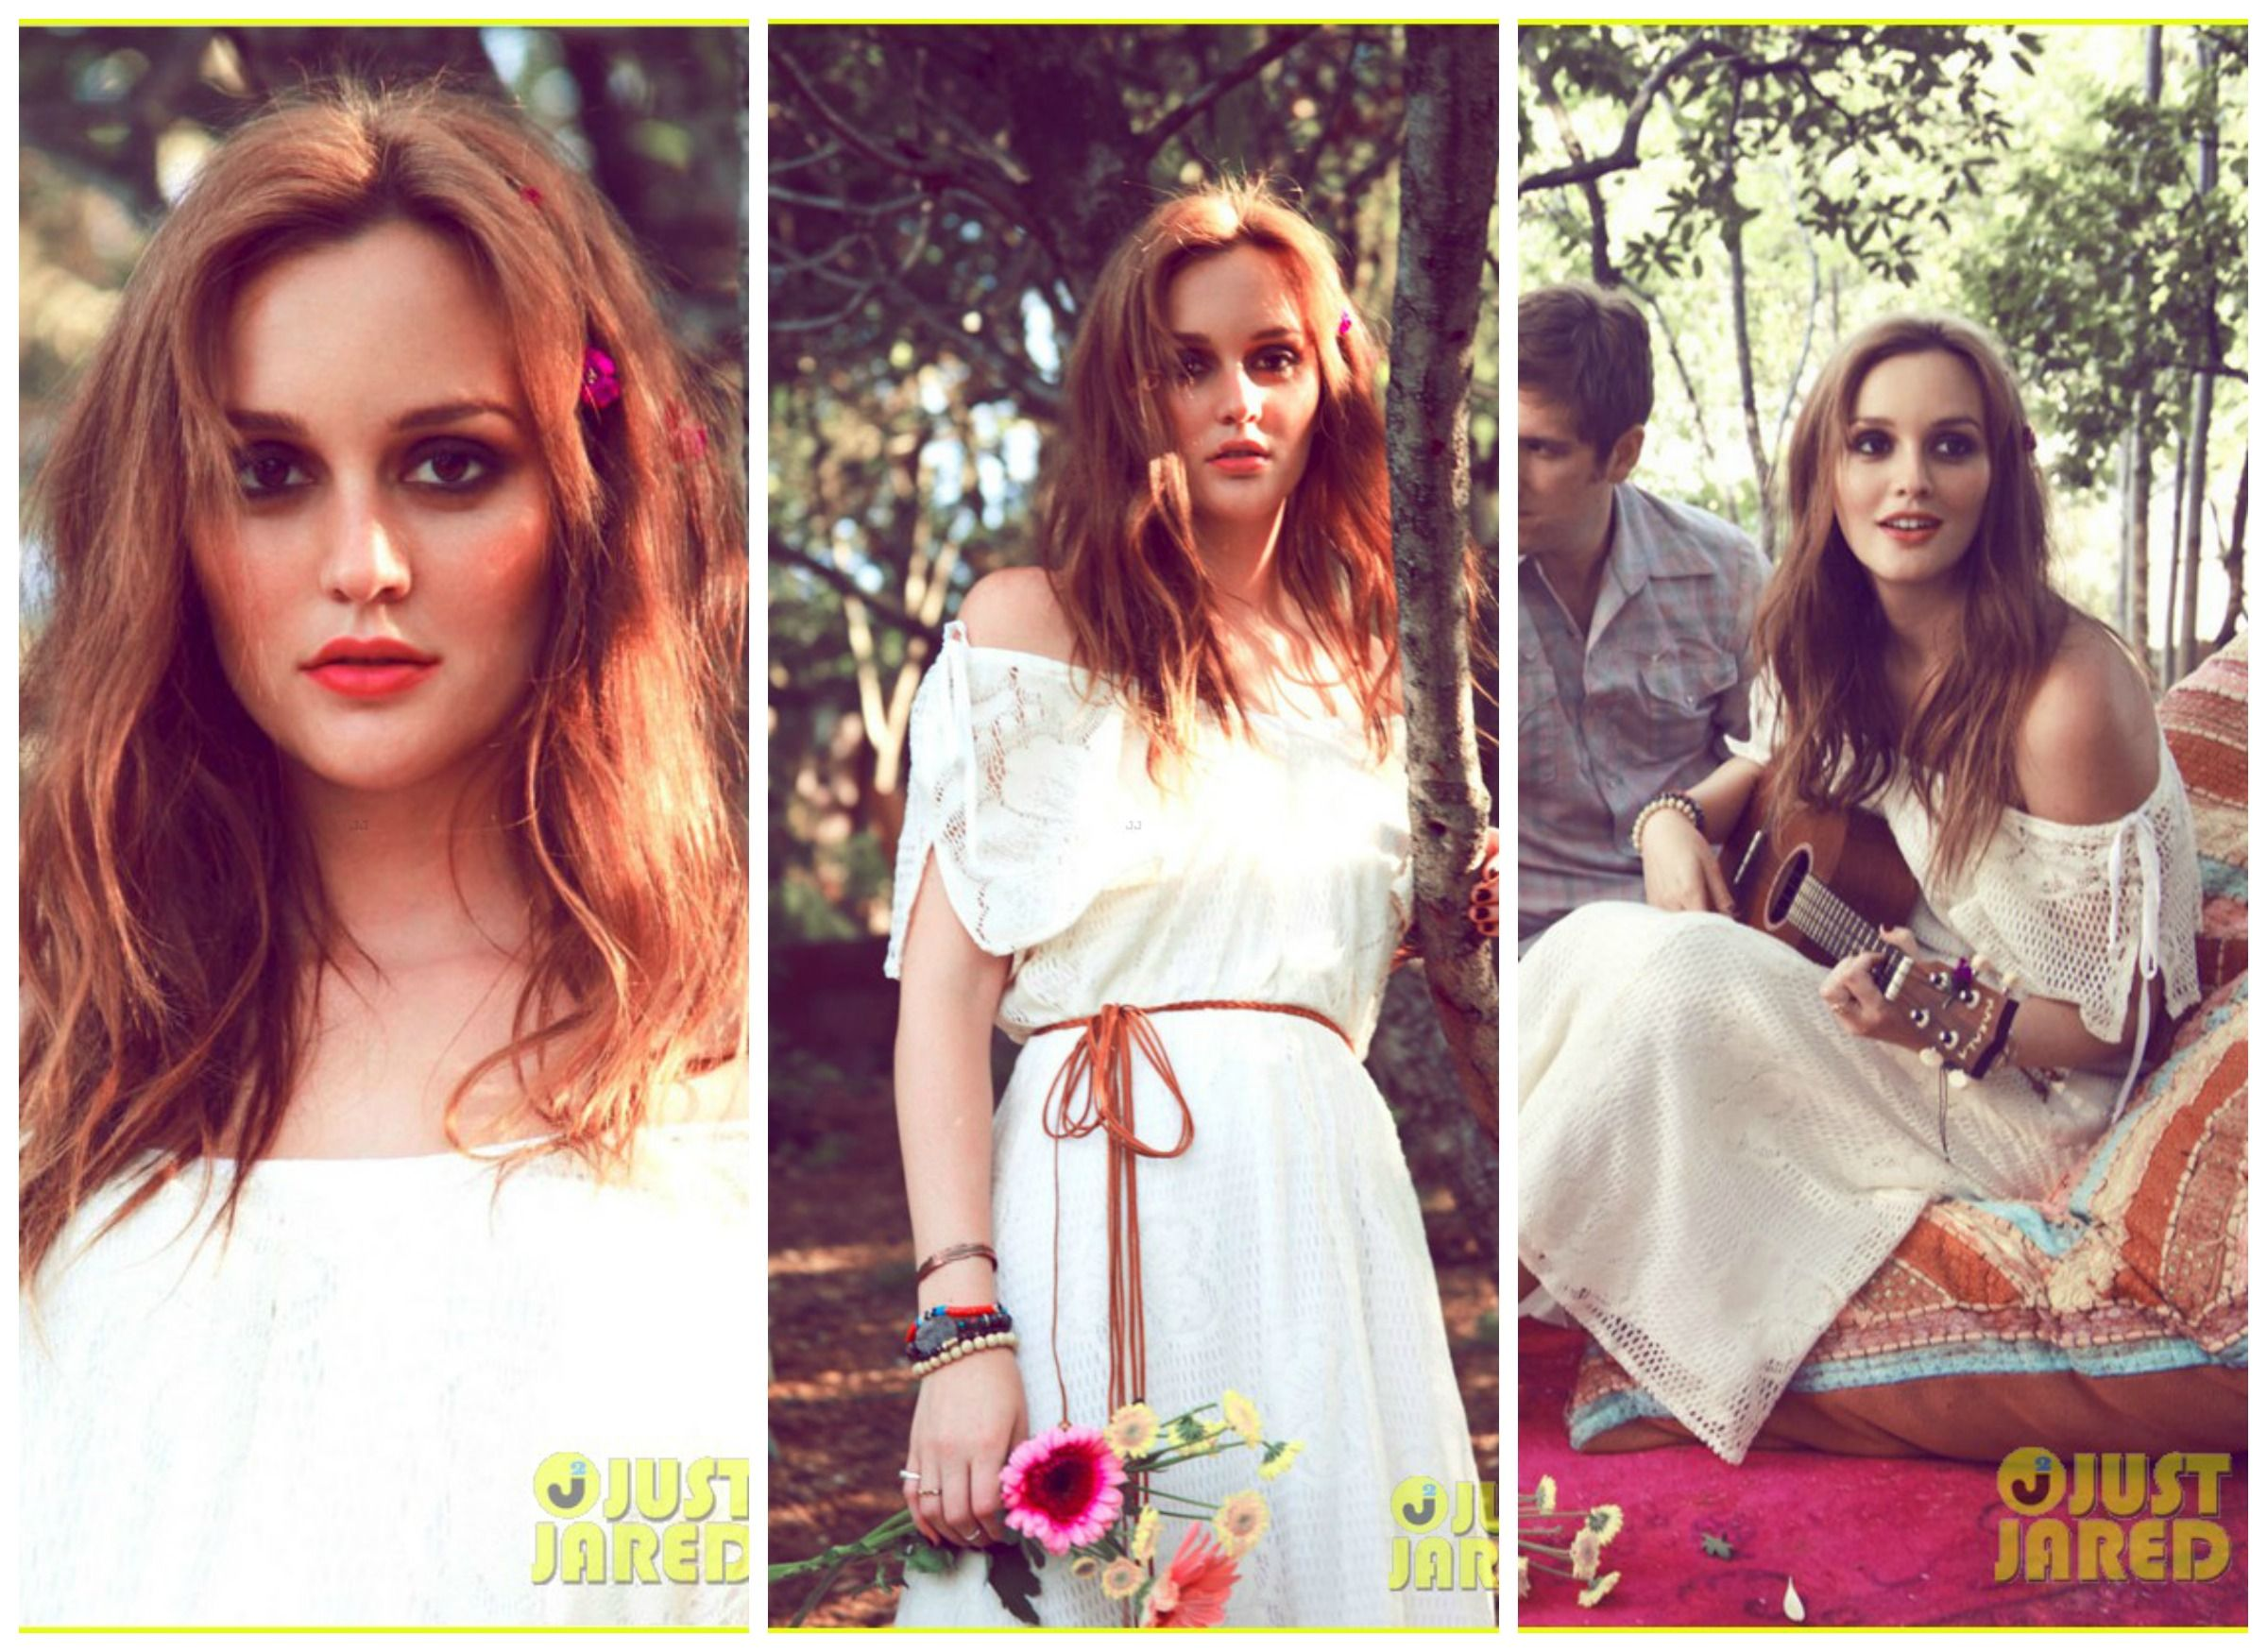 Leighton Meester in this photo shoot for her and the band in the Dark's west coast tour!